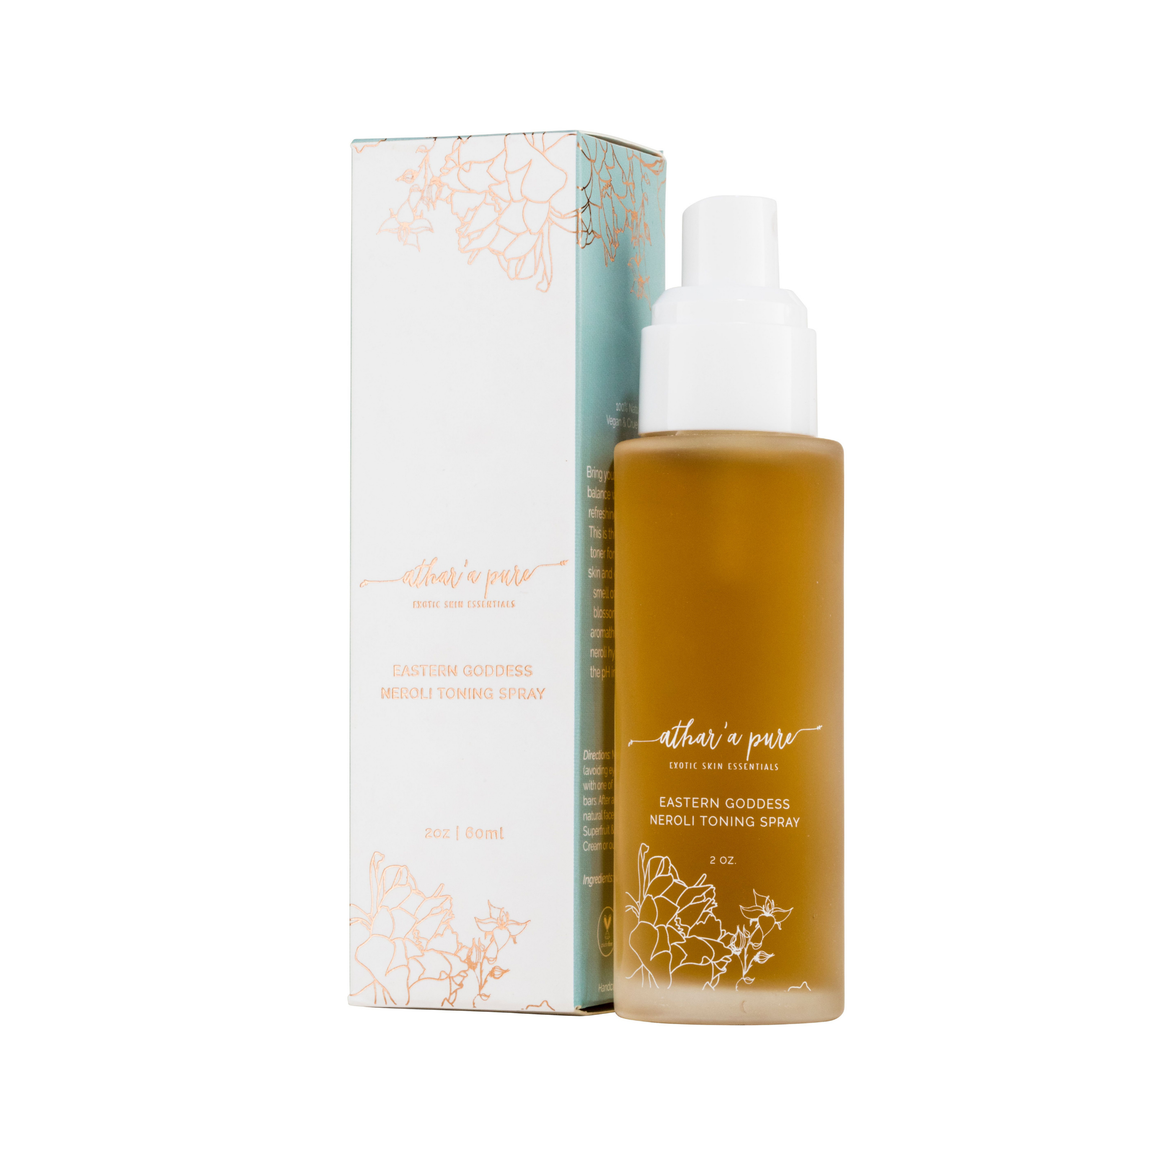 Eastern Goddess Neroli Toning Mist - Natural Face Toner (Vegan, 100% Natural)